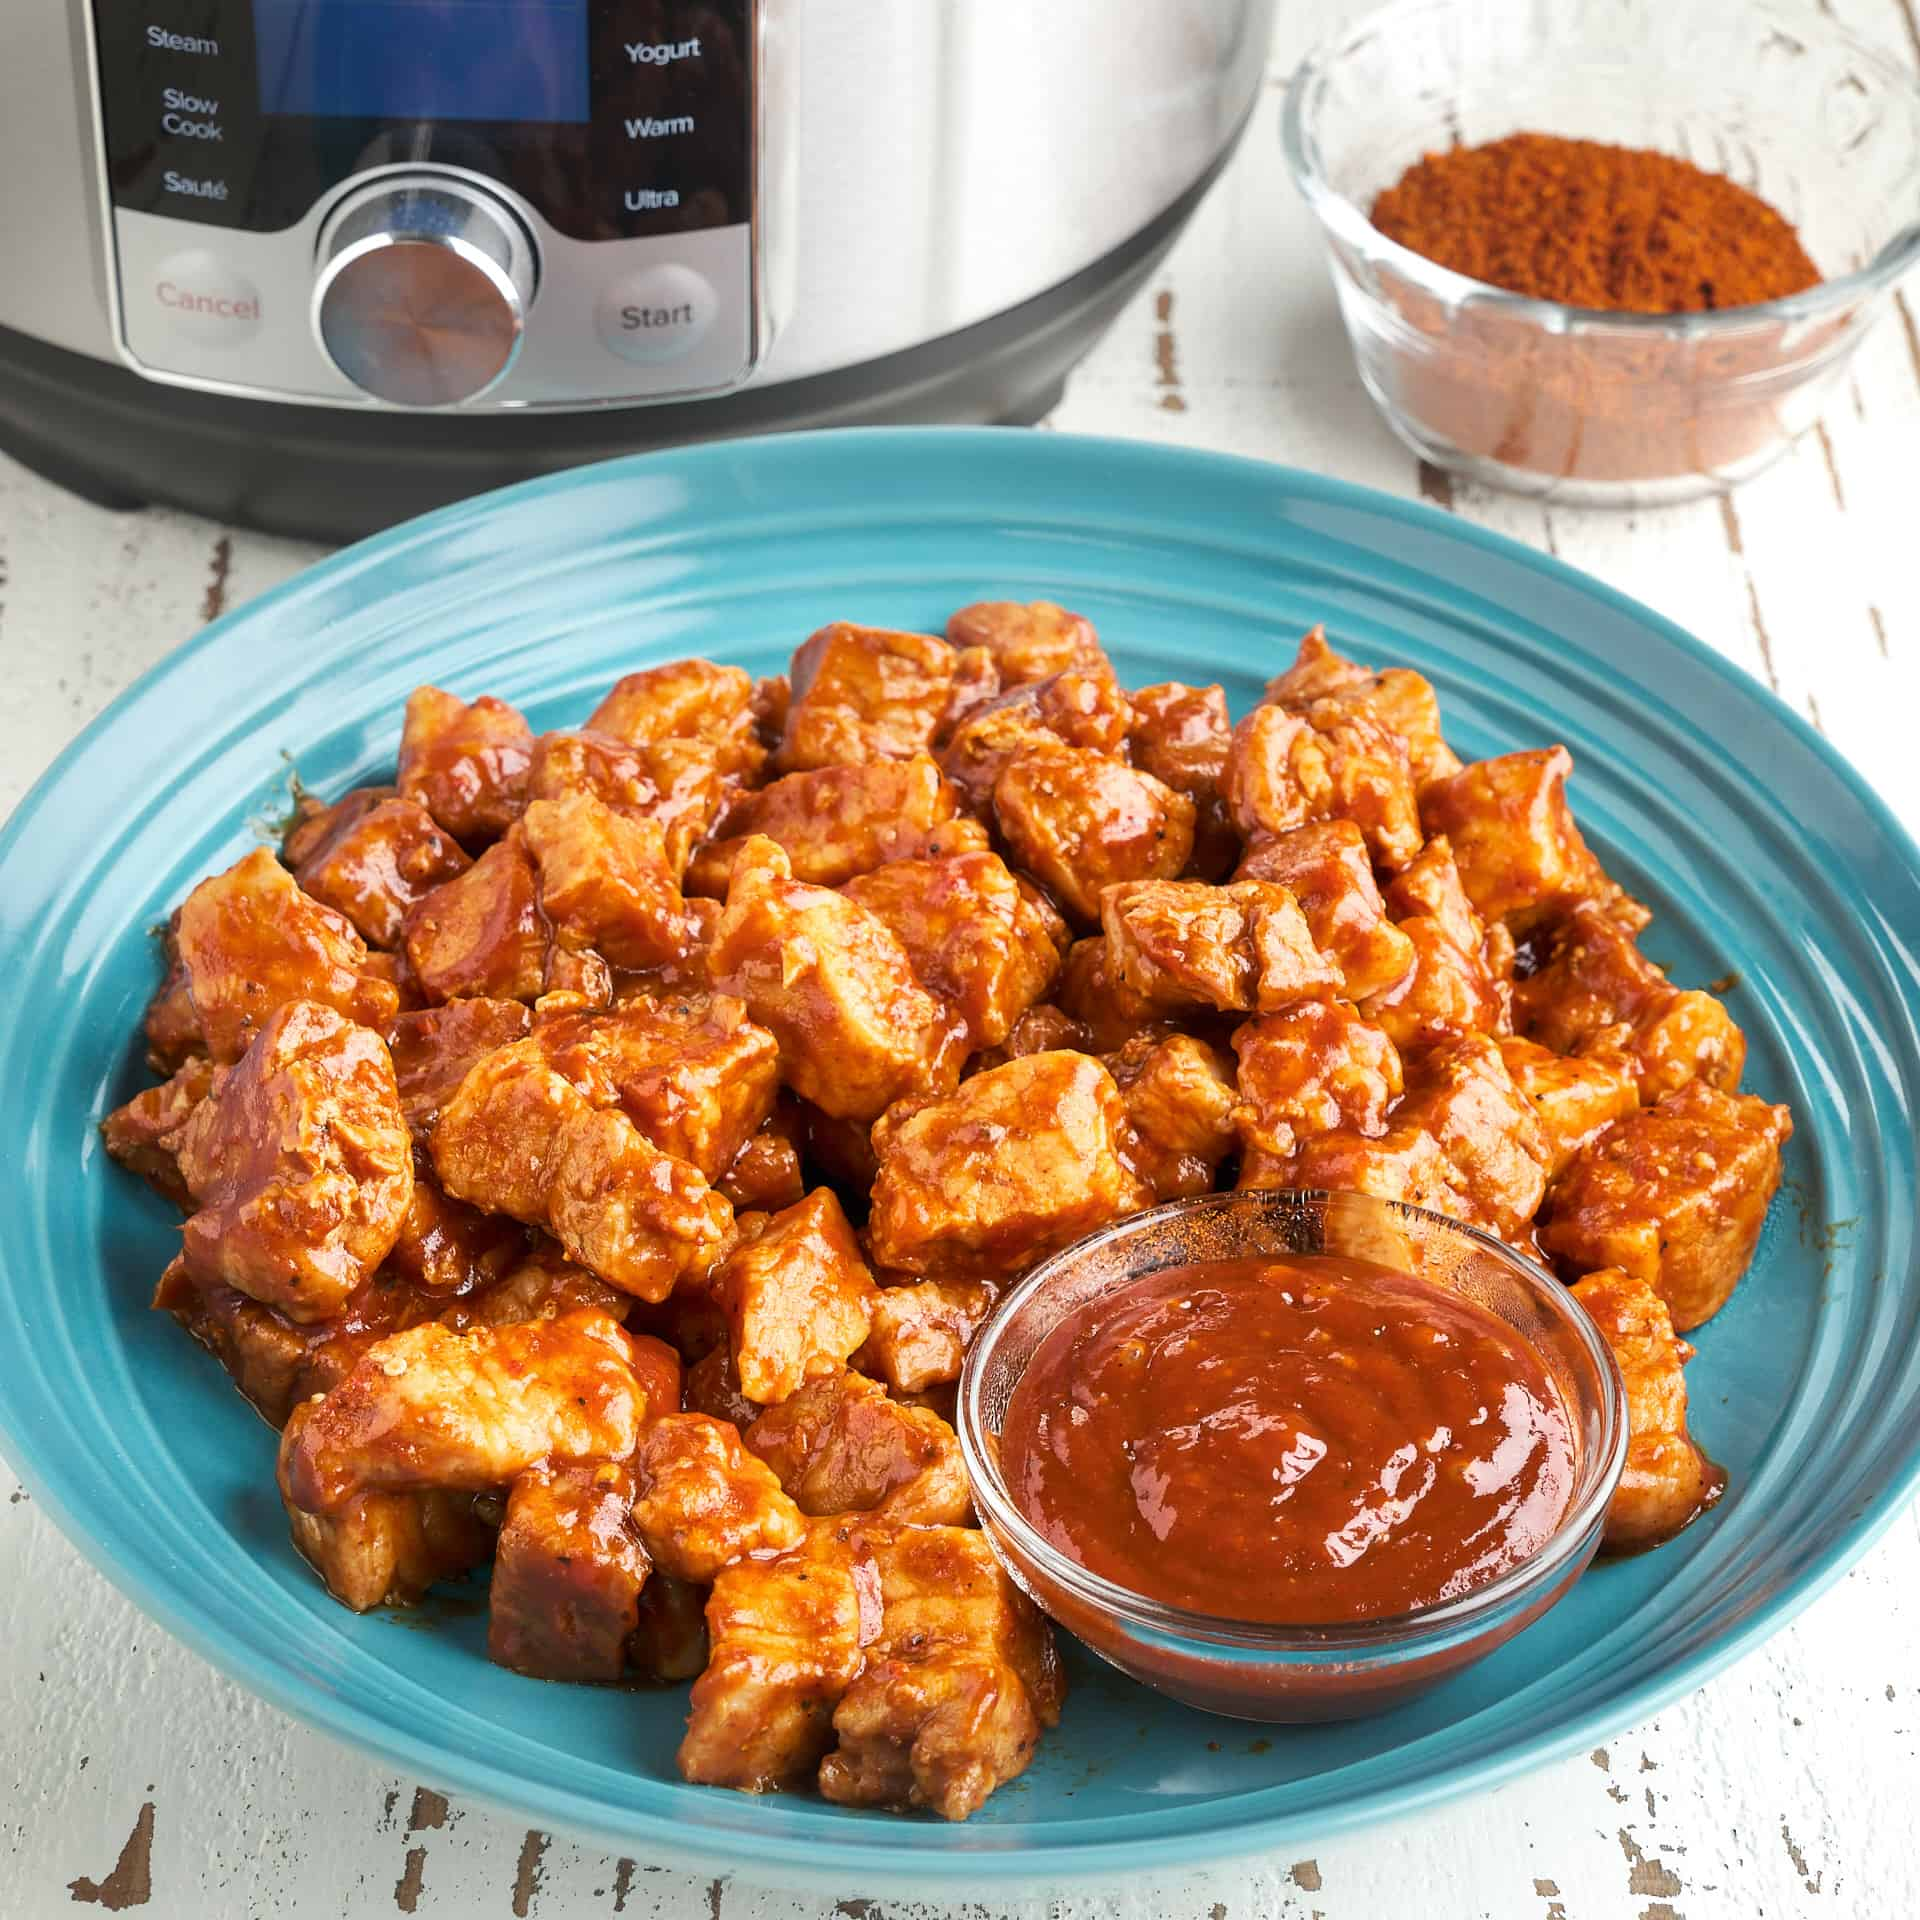 A bowl of pork belly cubes, tossed in barbecue sauce, with a small bowl of barbecue sauce, a bowl of barbecue rub, and a pressure cooker in the background